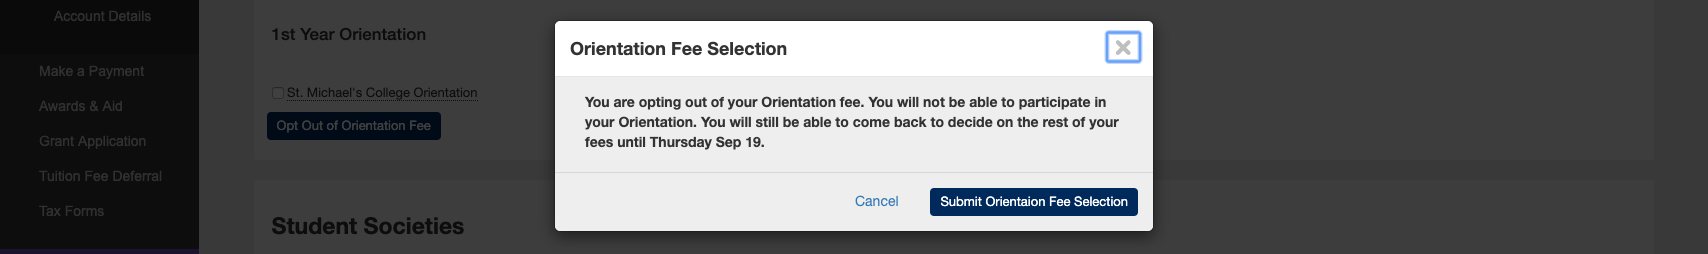 A confirmation regarding opting out of orientation